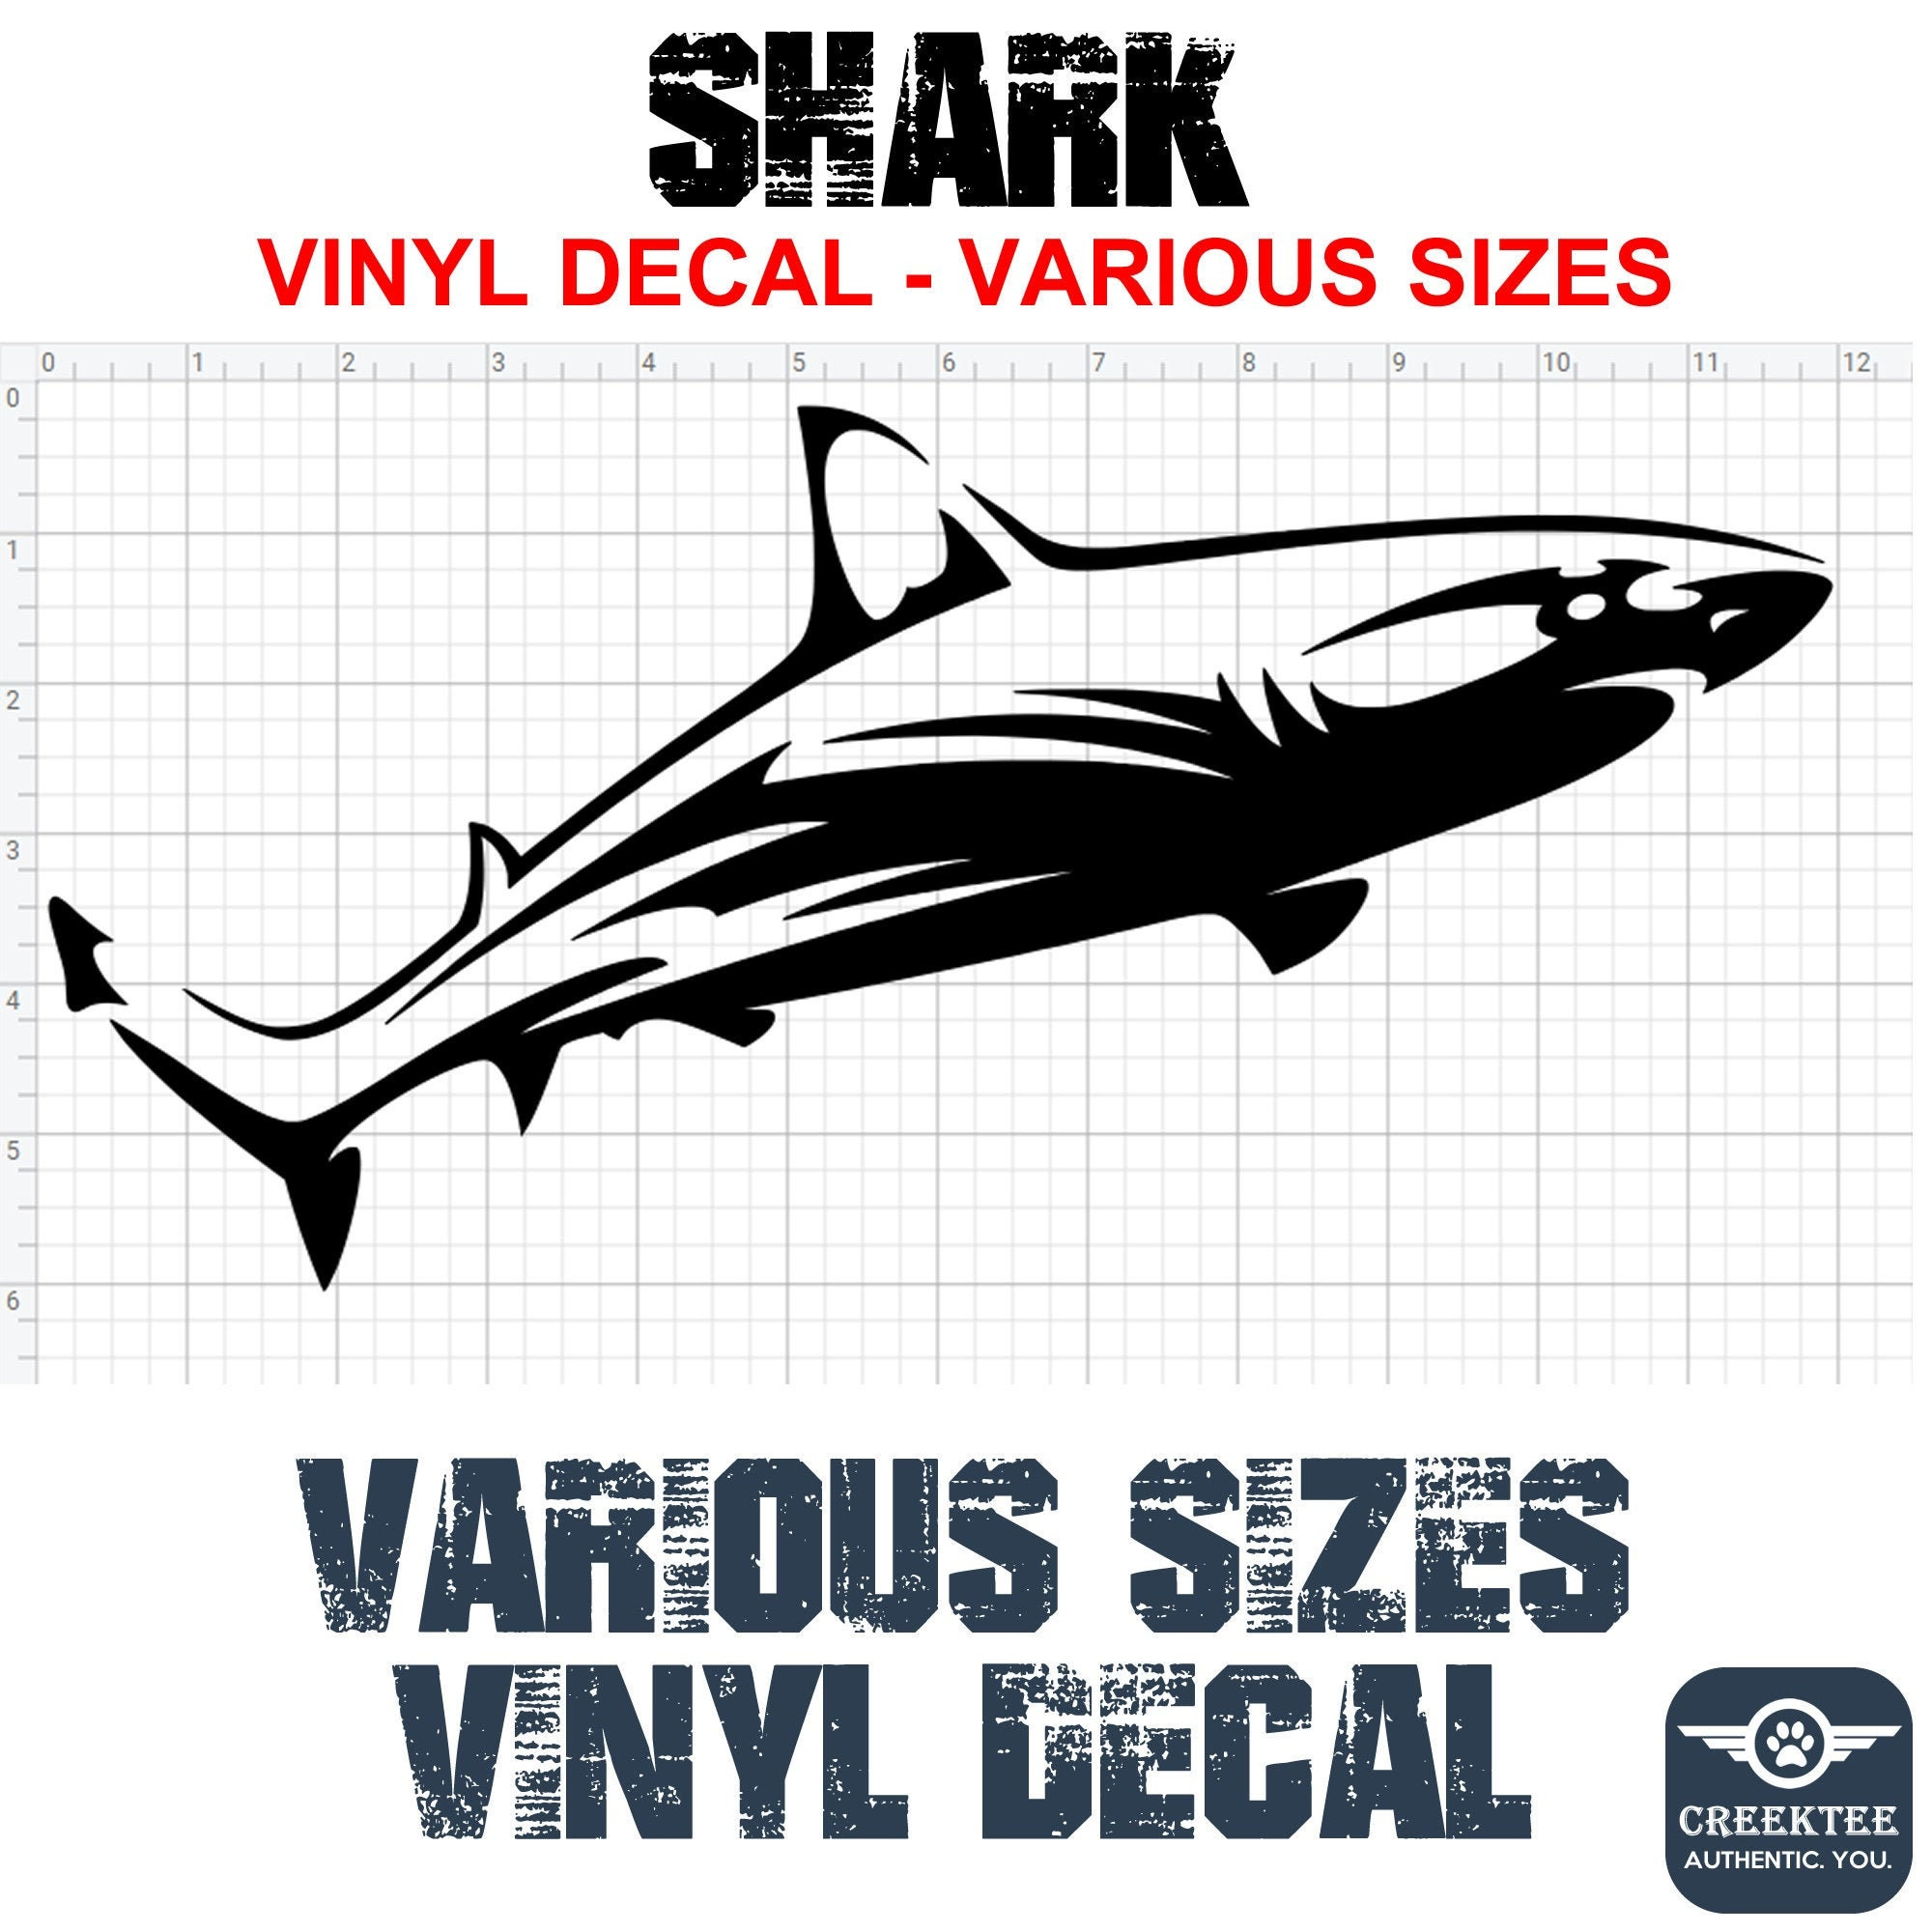 CAD$8.69 - Shark vinyl decal in various sizes or colors